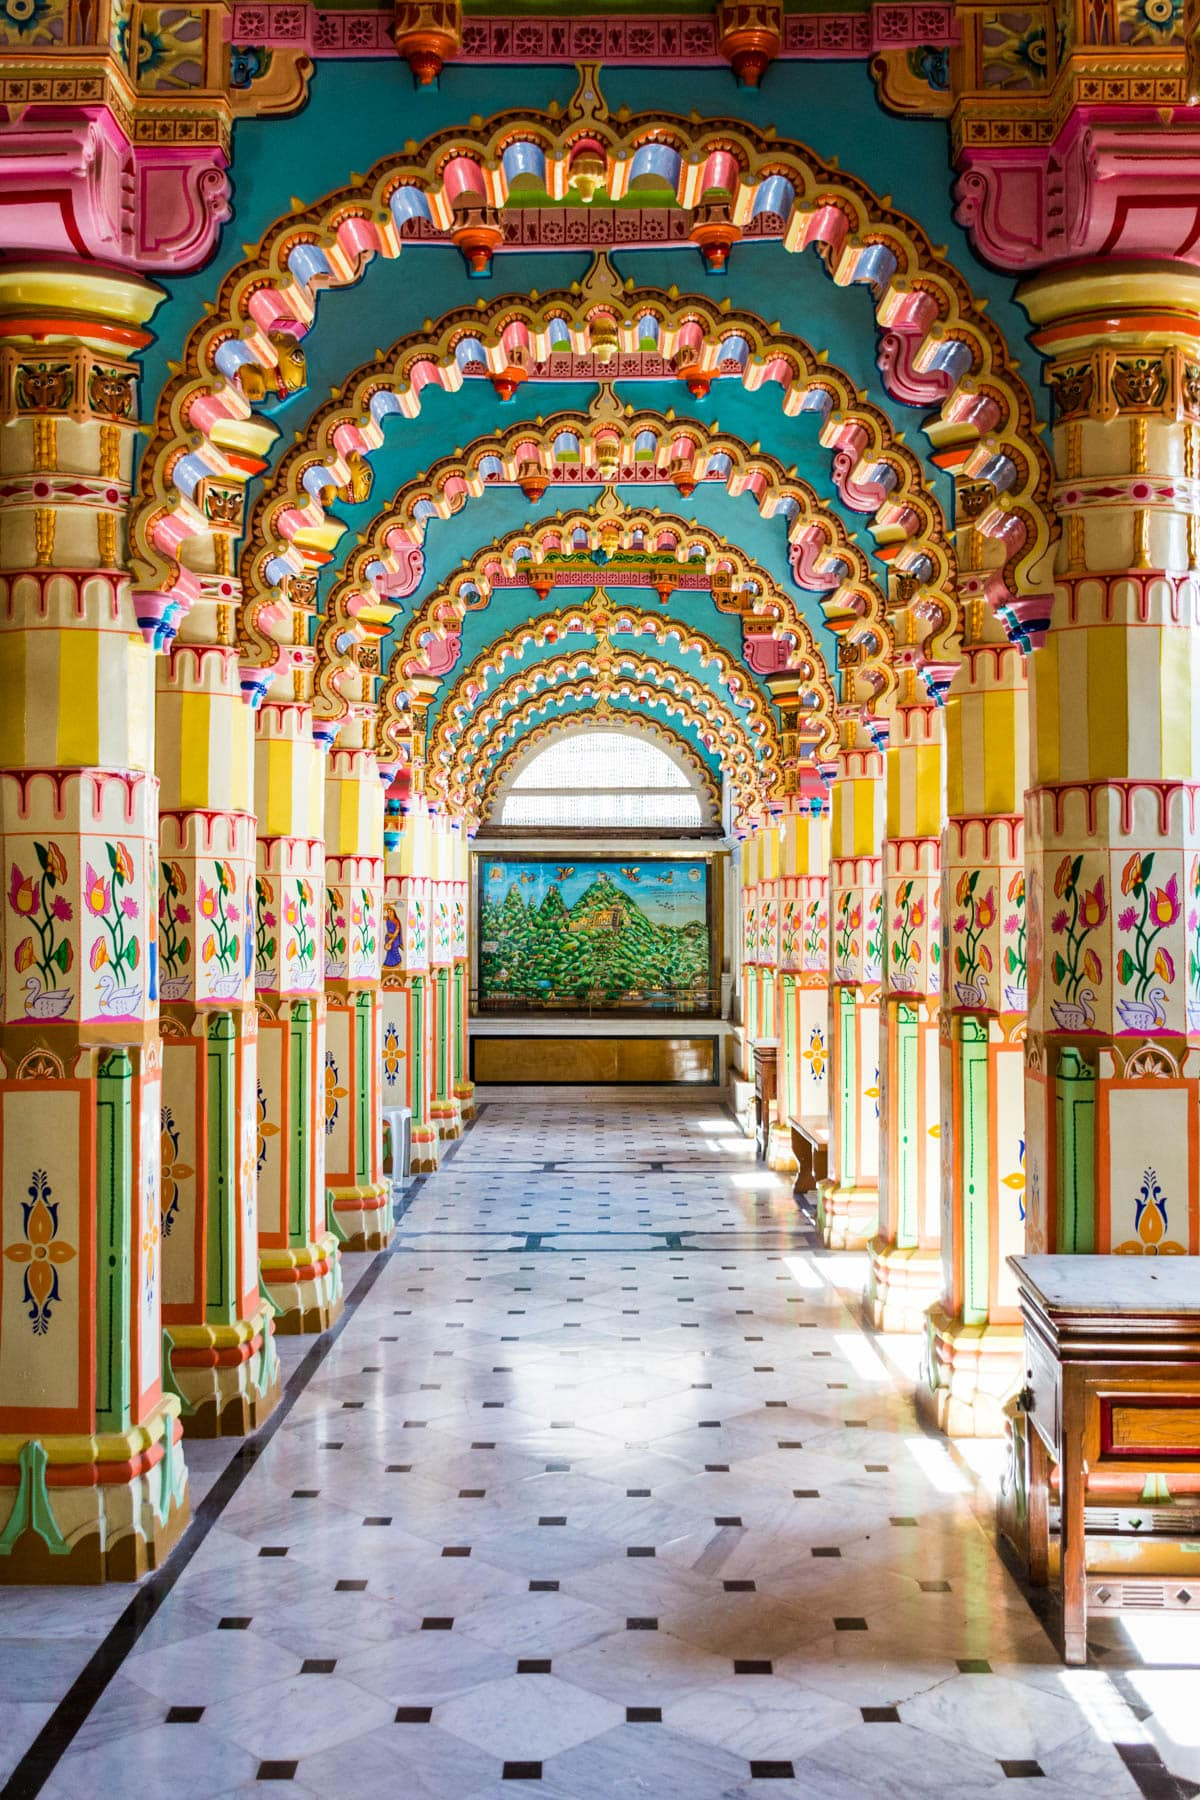 Ways of getting more off the beaten track while traveling - Jain temple in Jamnagar, India - Lost With Purpose travel blog